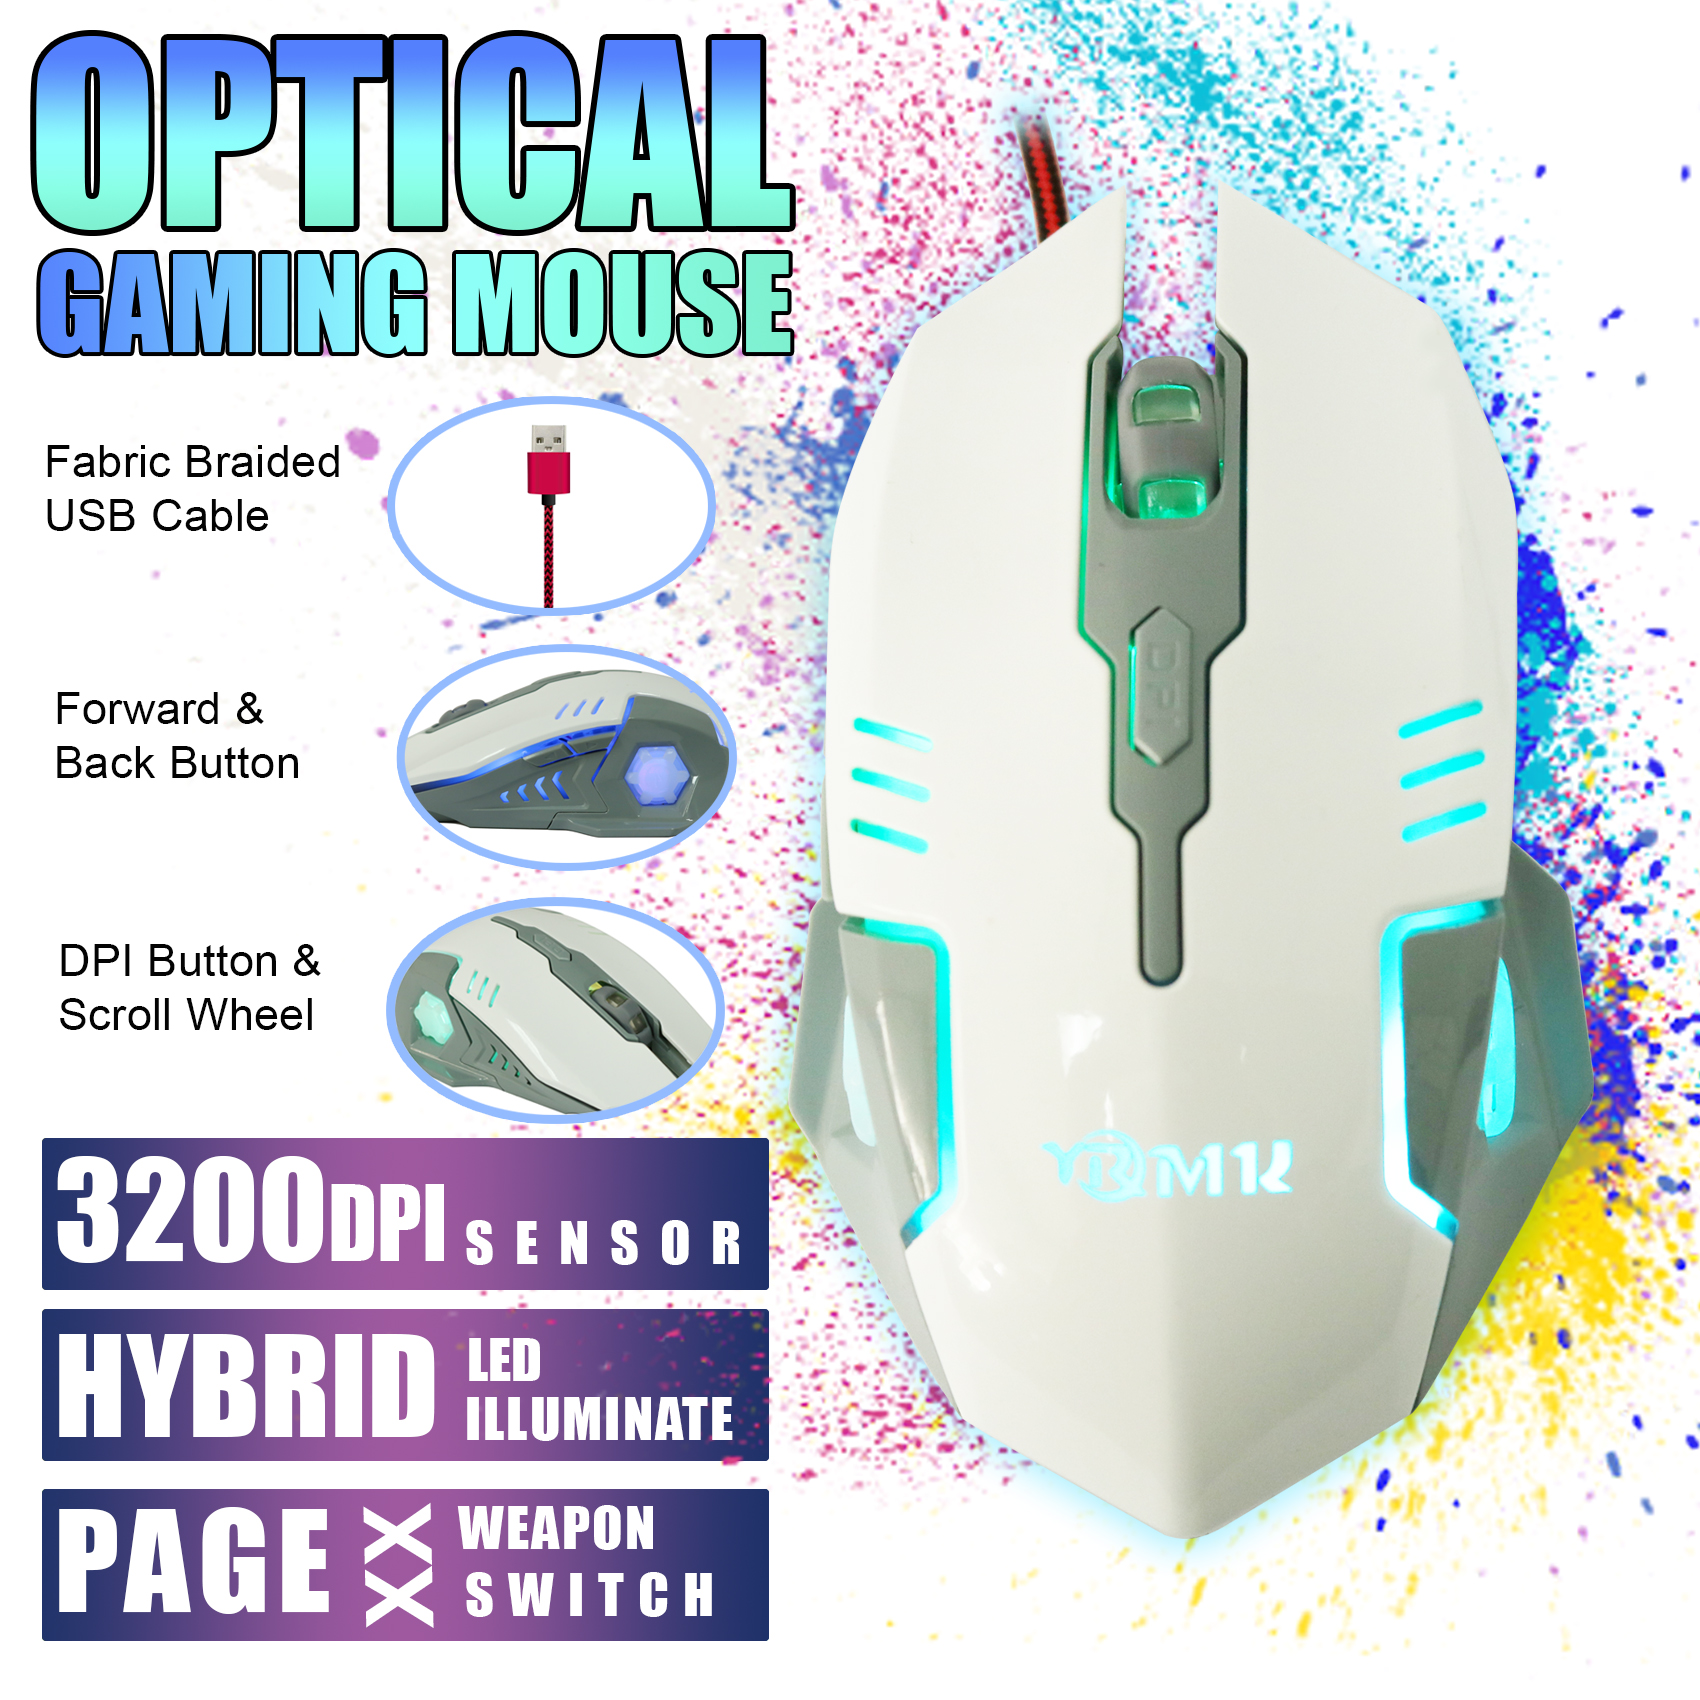 6D Optical Gaming Mouse 1.5 Meters Fabric Braided Cable 3200 DPI - White